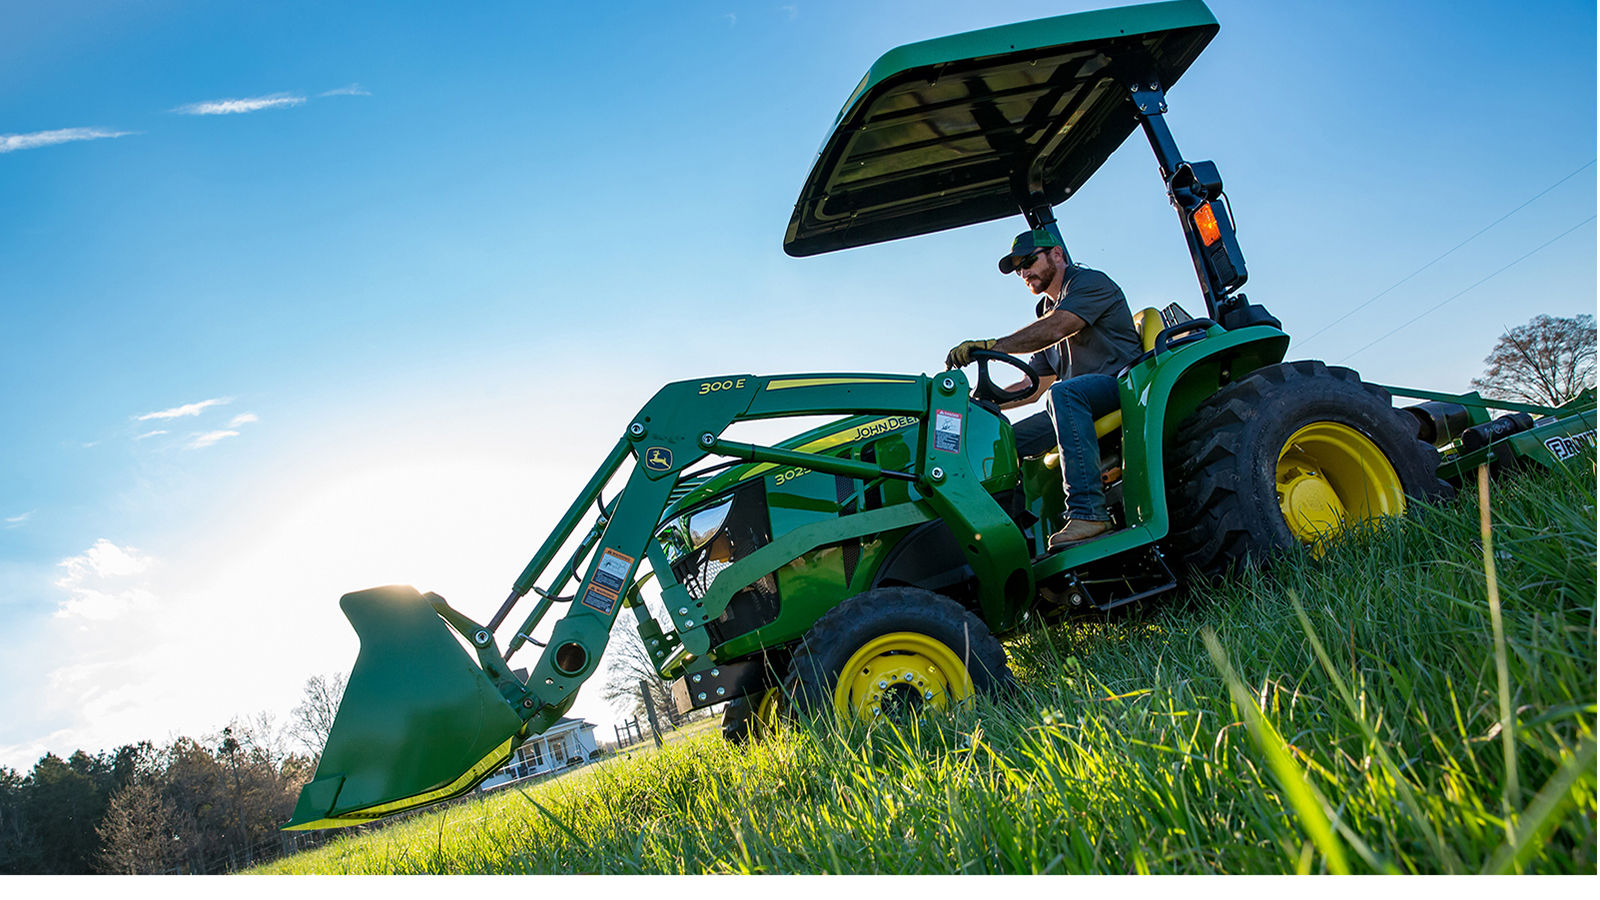 John Deere kicks off 100th year in tractors in 2018 | AGDAILY